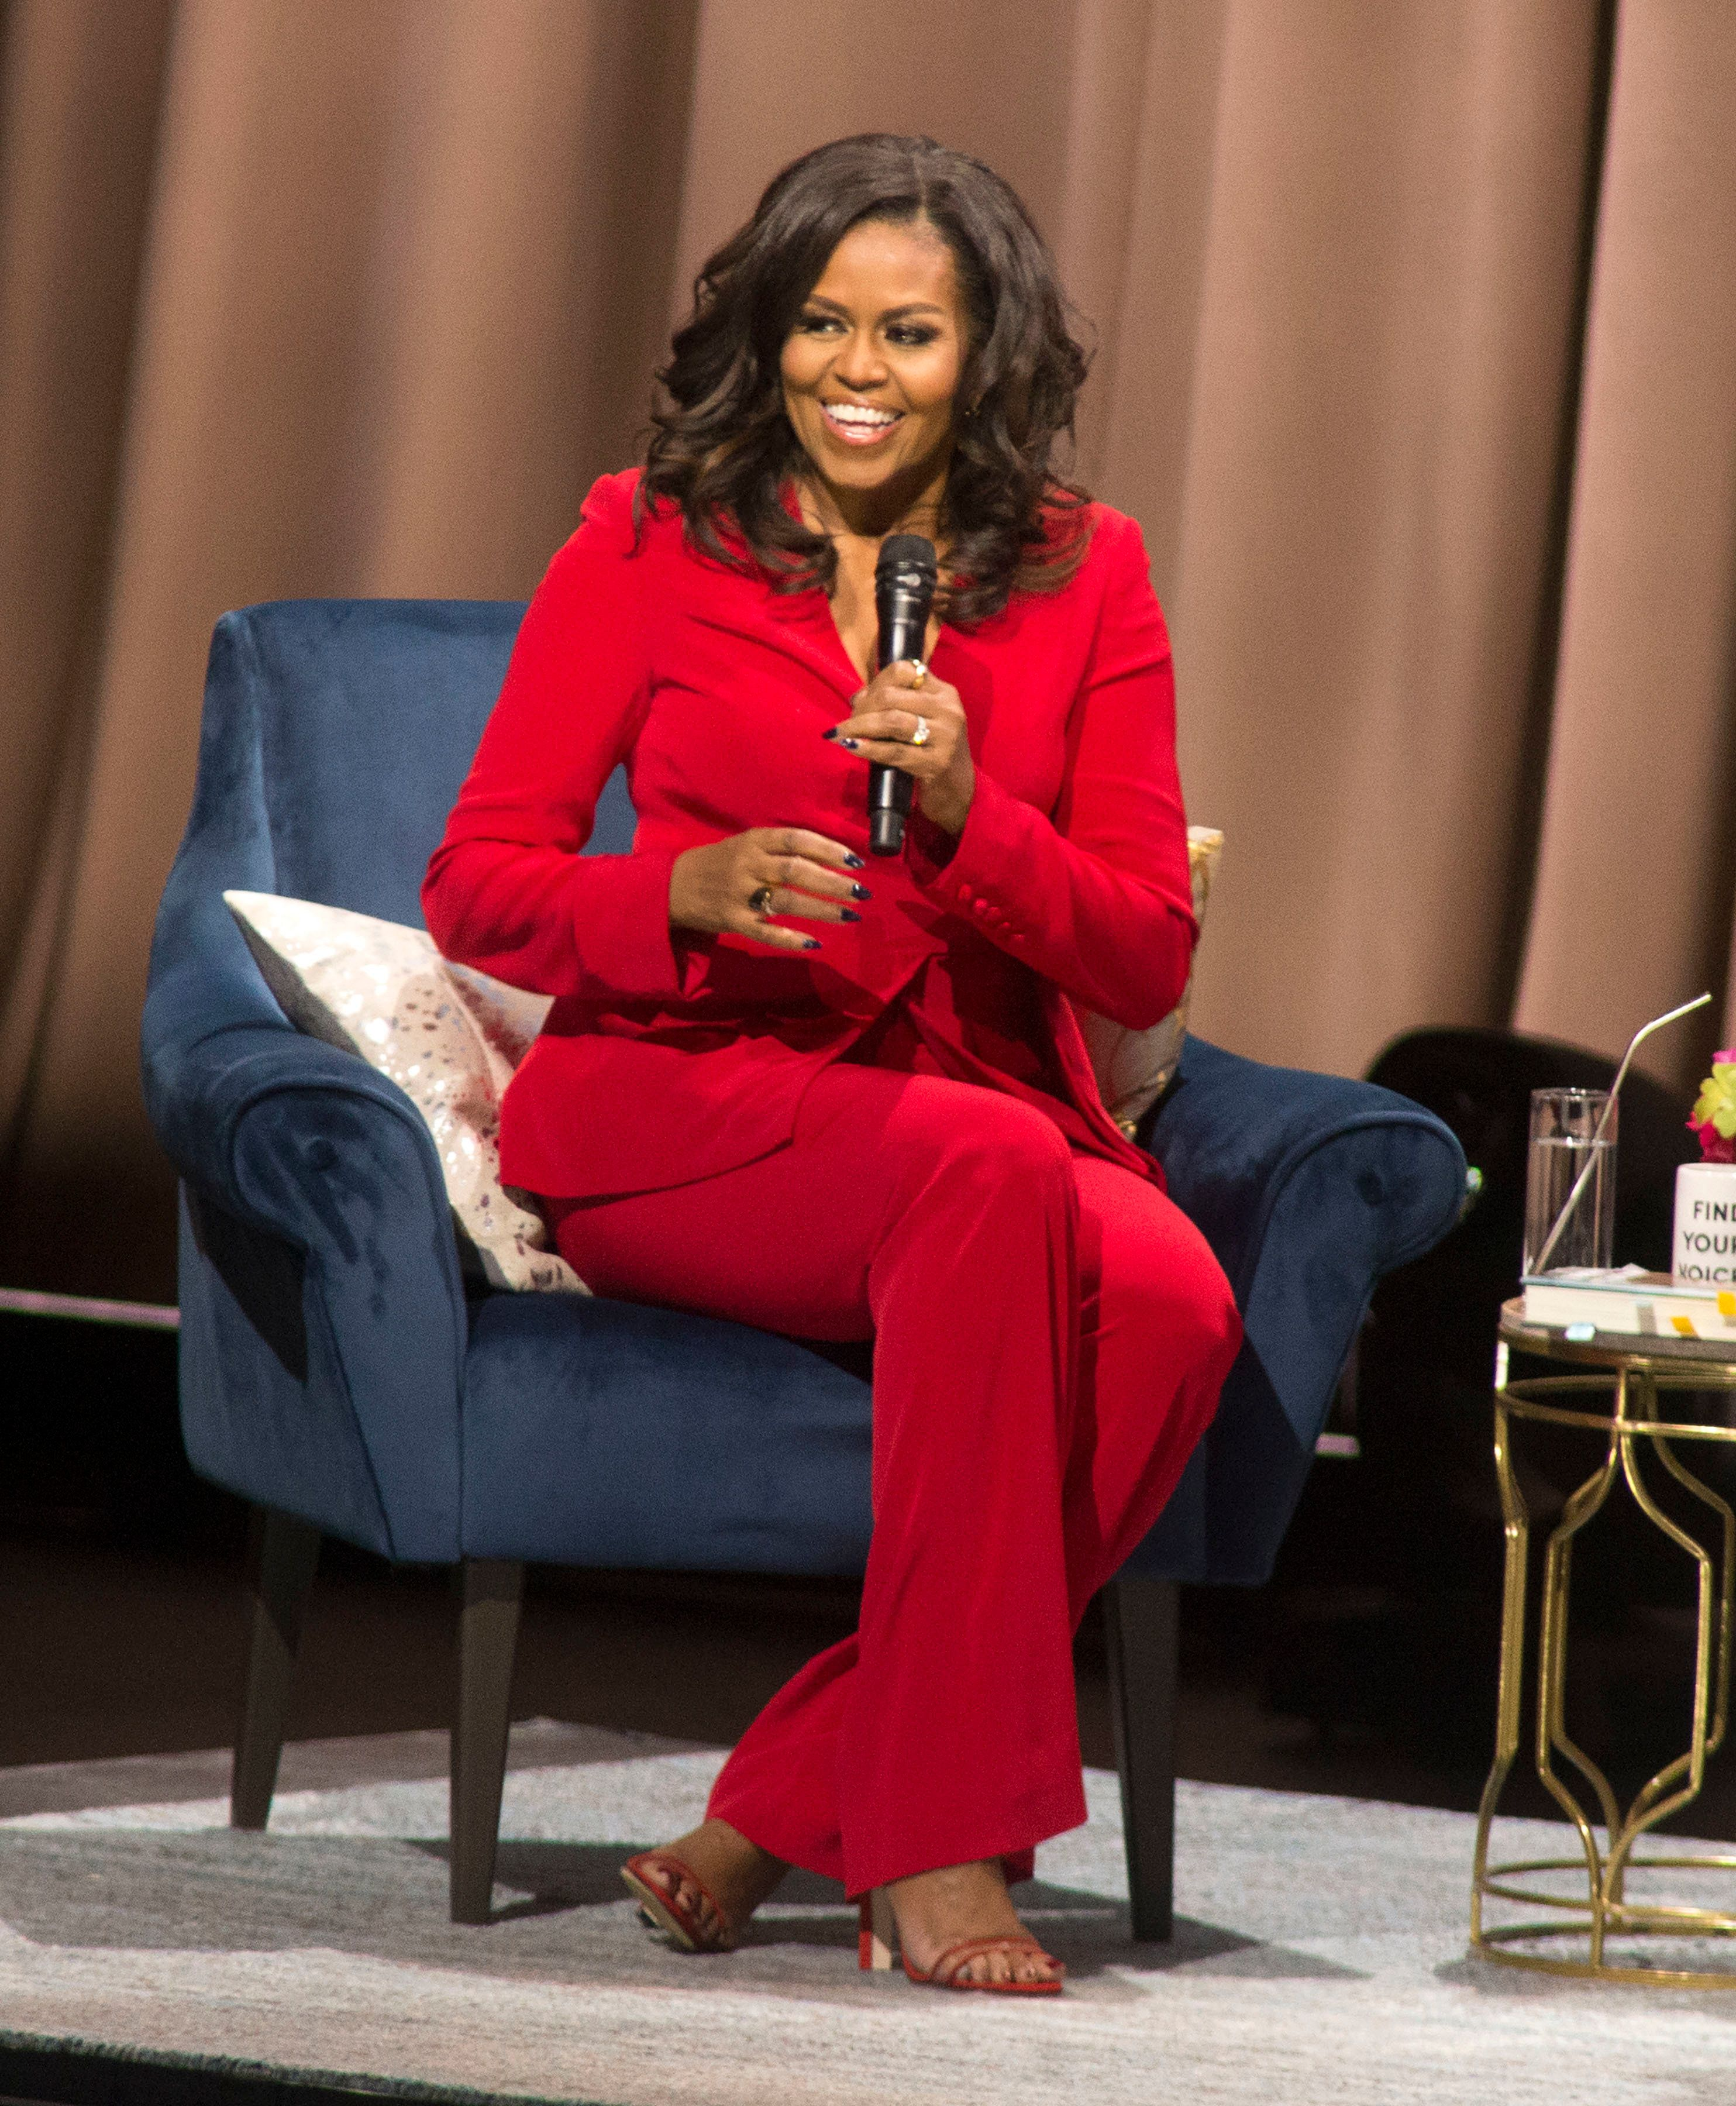 Michelle Obama Shades Trump While Talking About White House